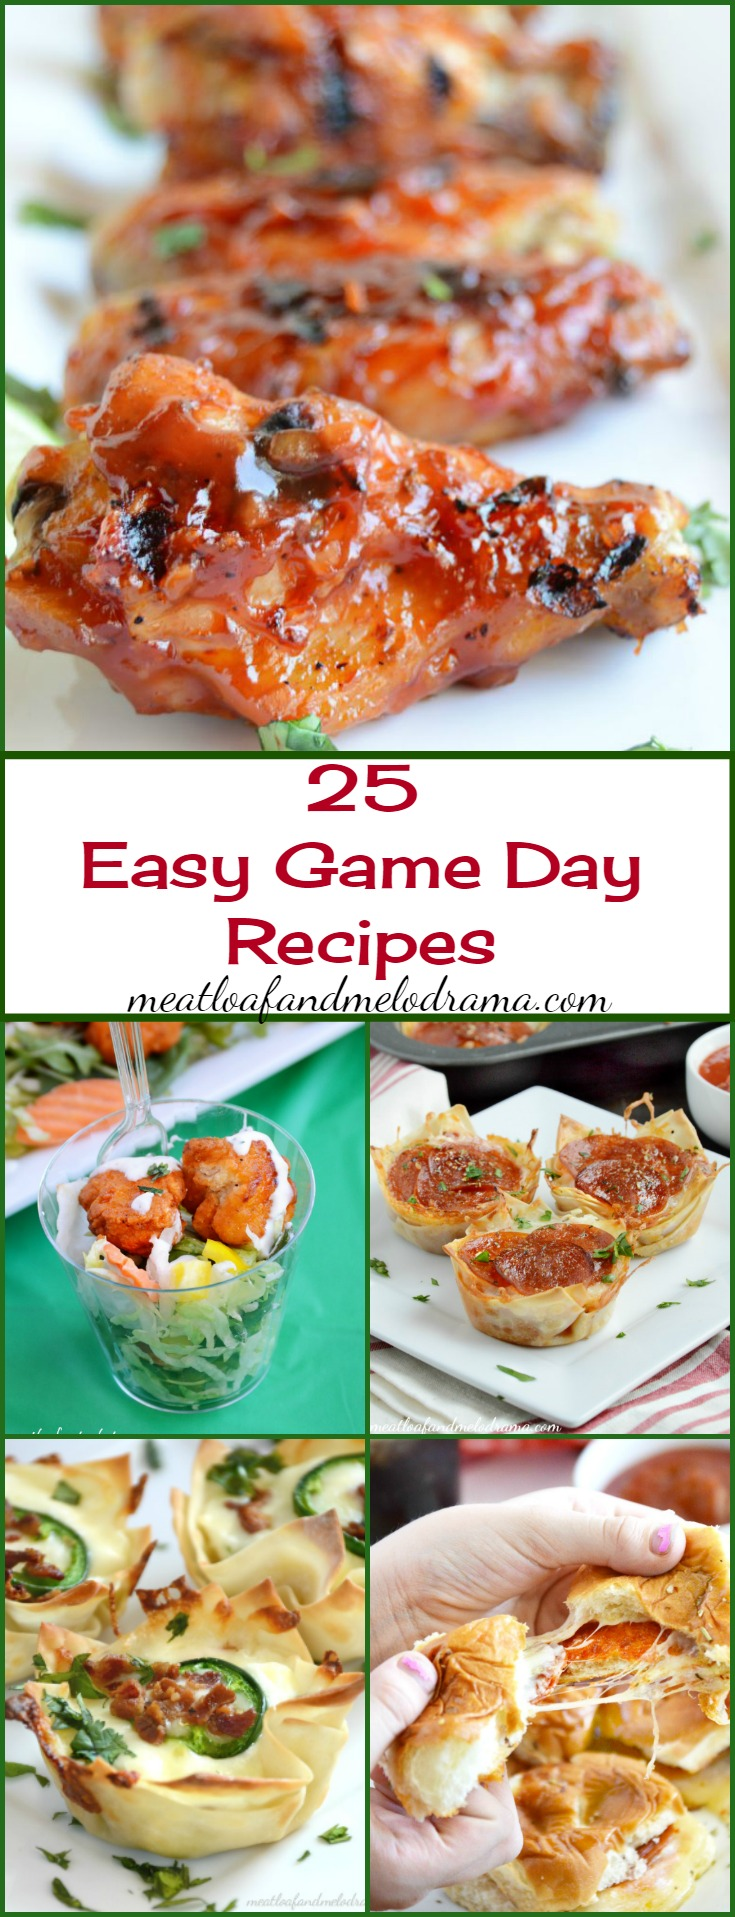 25-easy-game-day-recipes-for-football-parties-tailgating-home